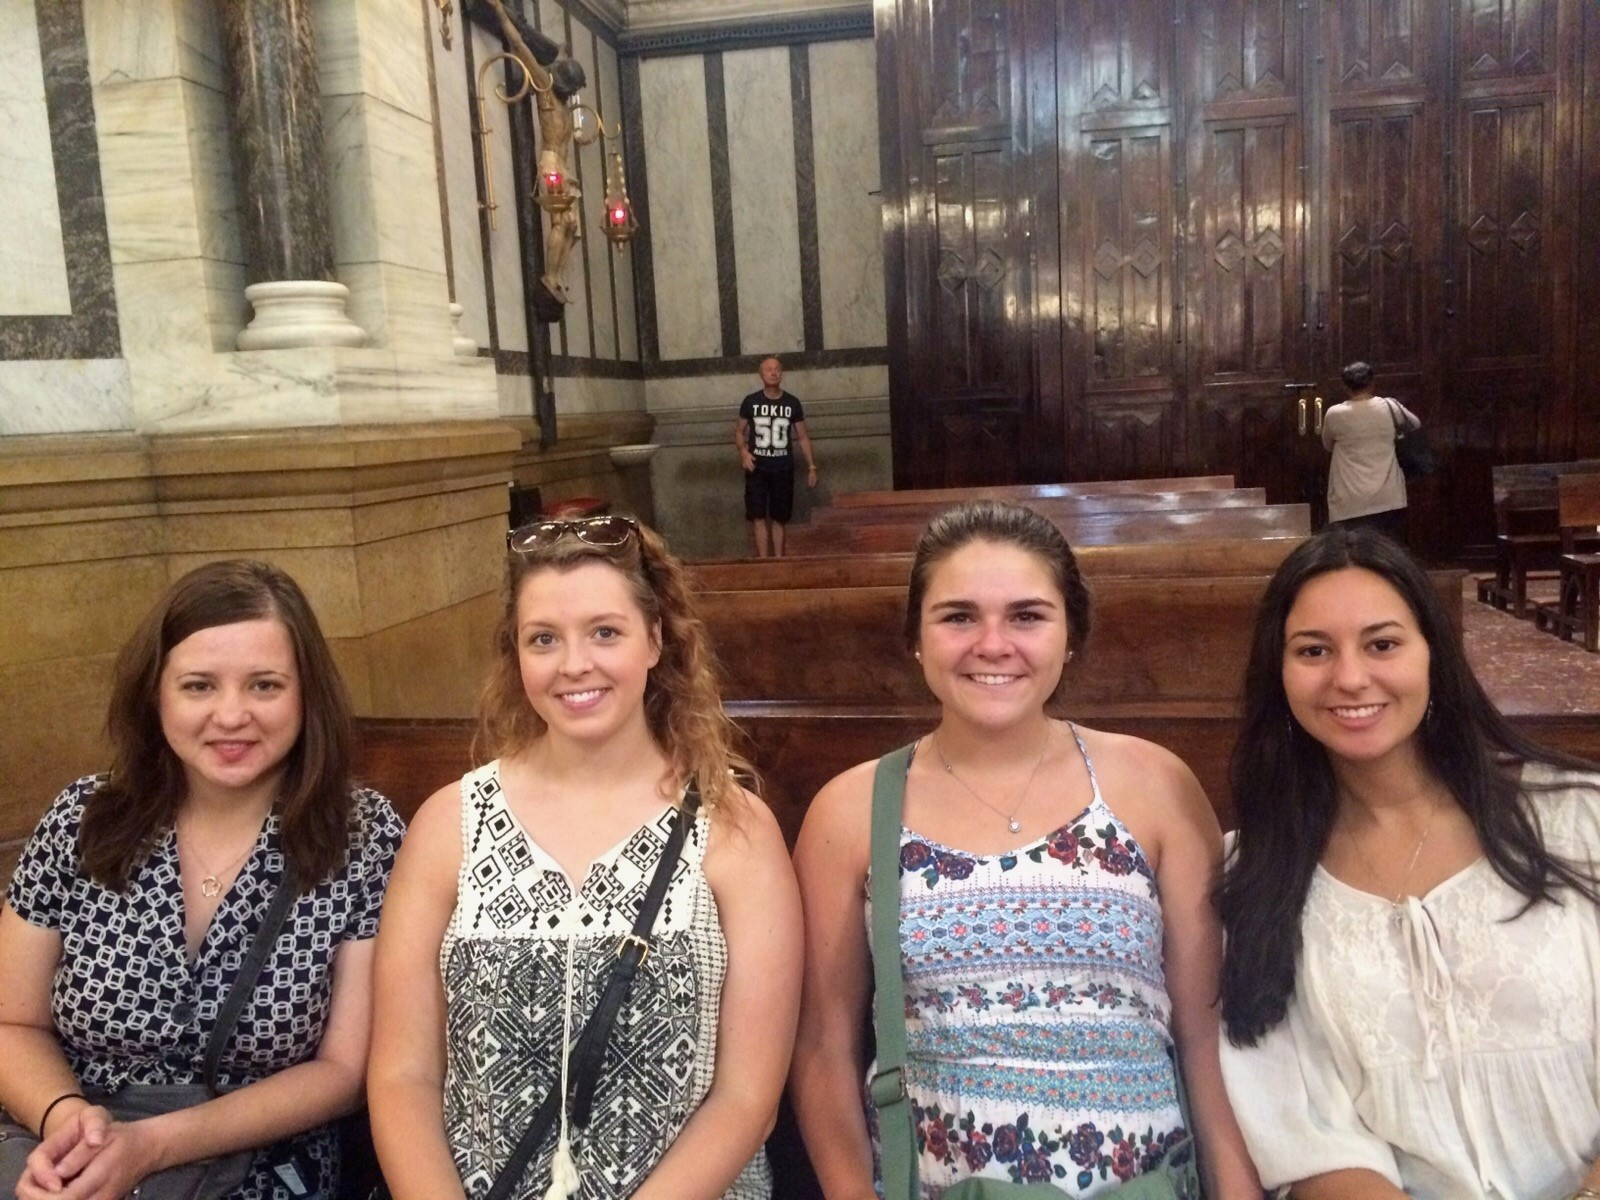 My roommates and I at mass (with our host family).